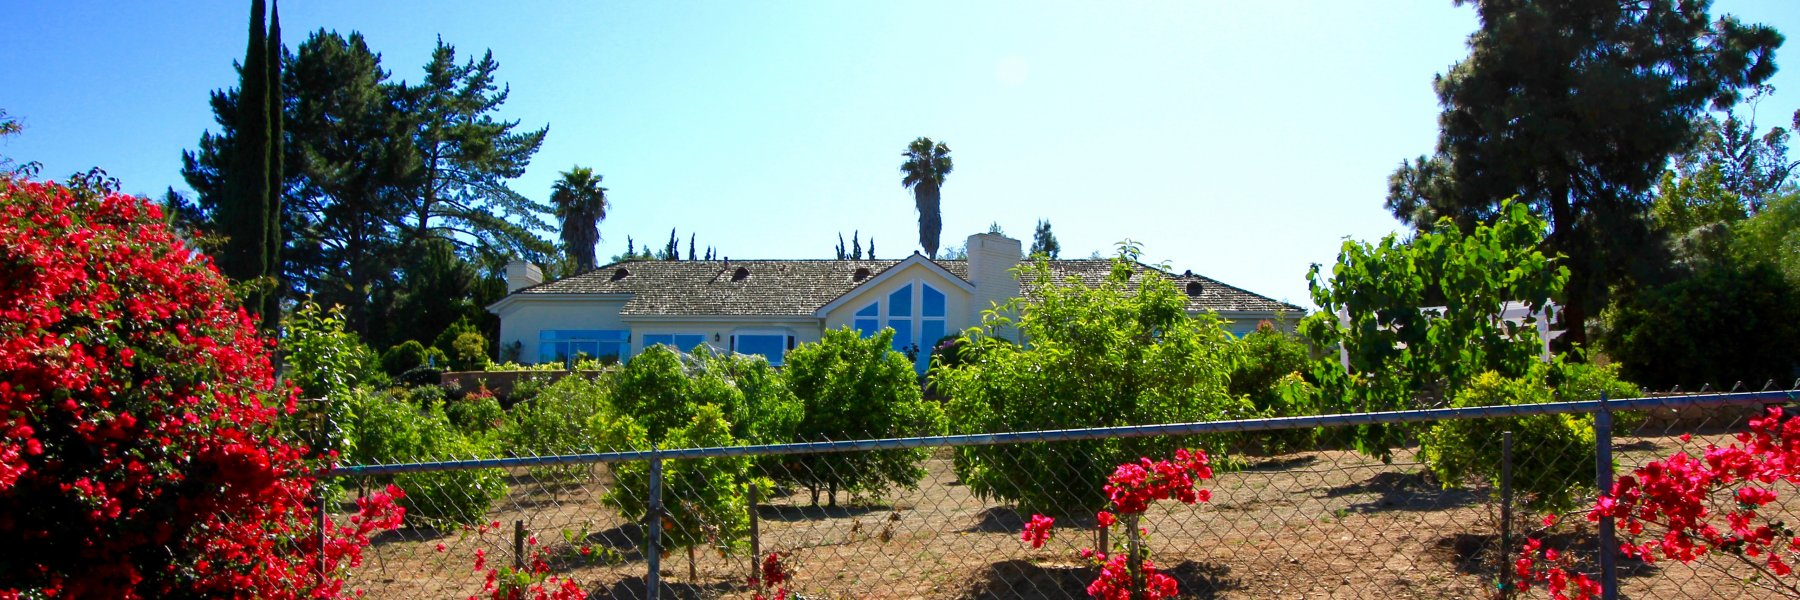 Olive Hill is a community of homes in Fallbrook California